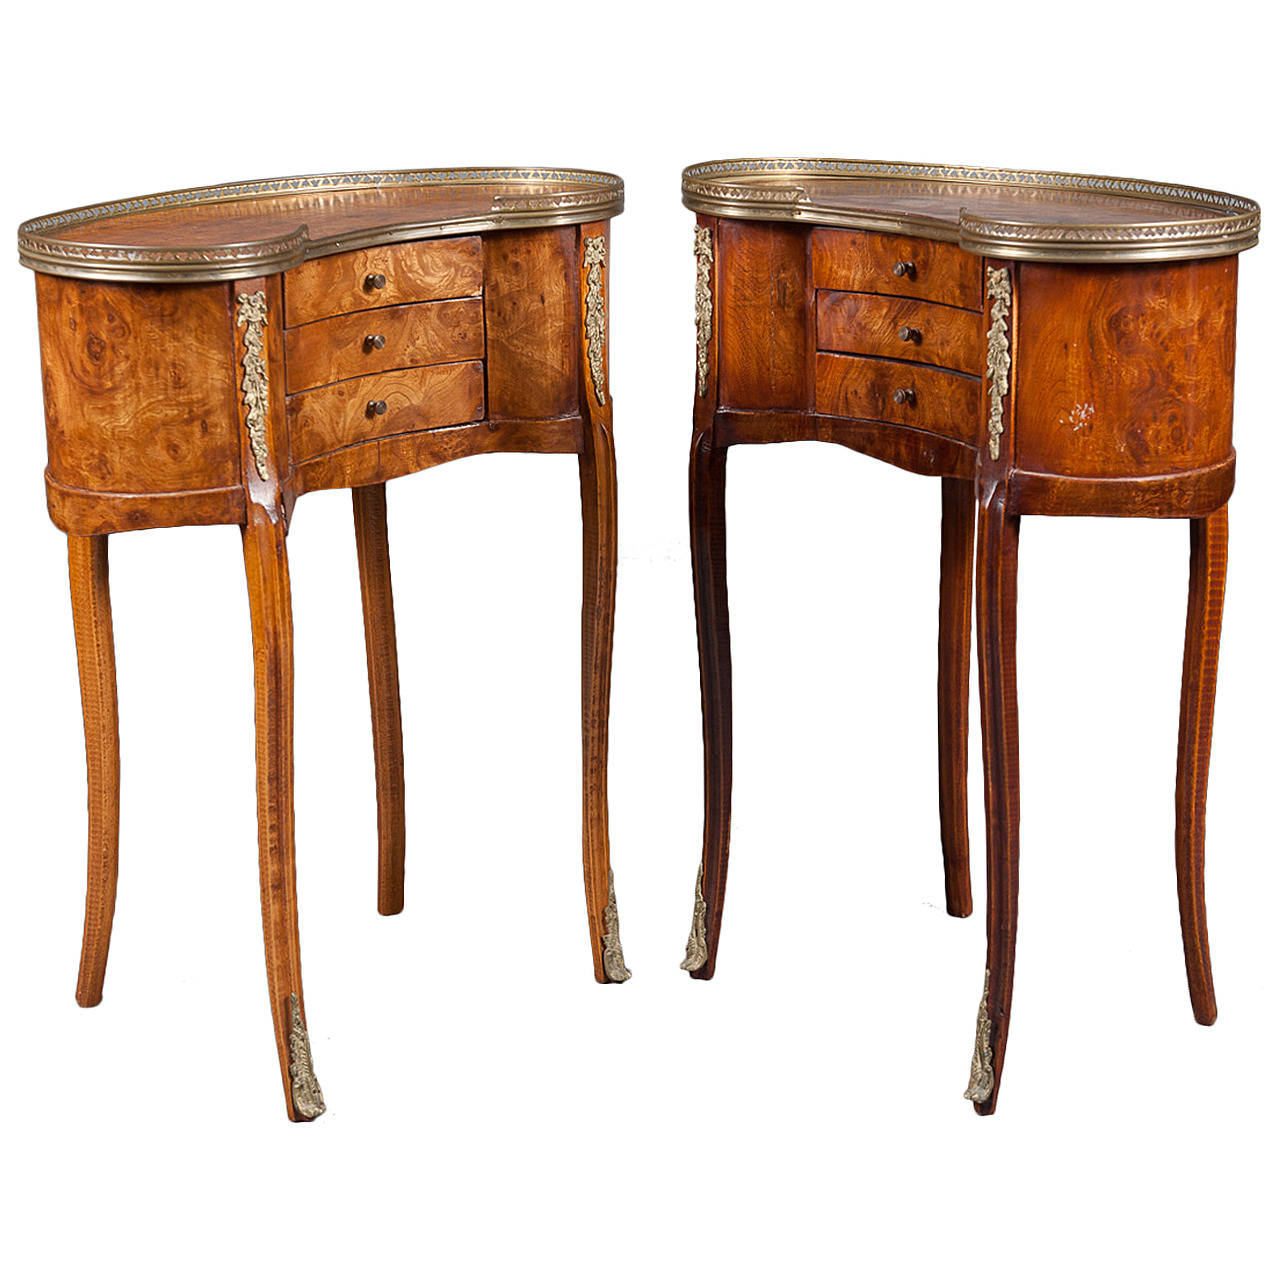 kidney shaped side table droughtrelief accent pair french mounted tables with kitchen sets bench brown wicker outdoor sedona furniture mid century coffee marble threshold garden